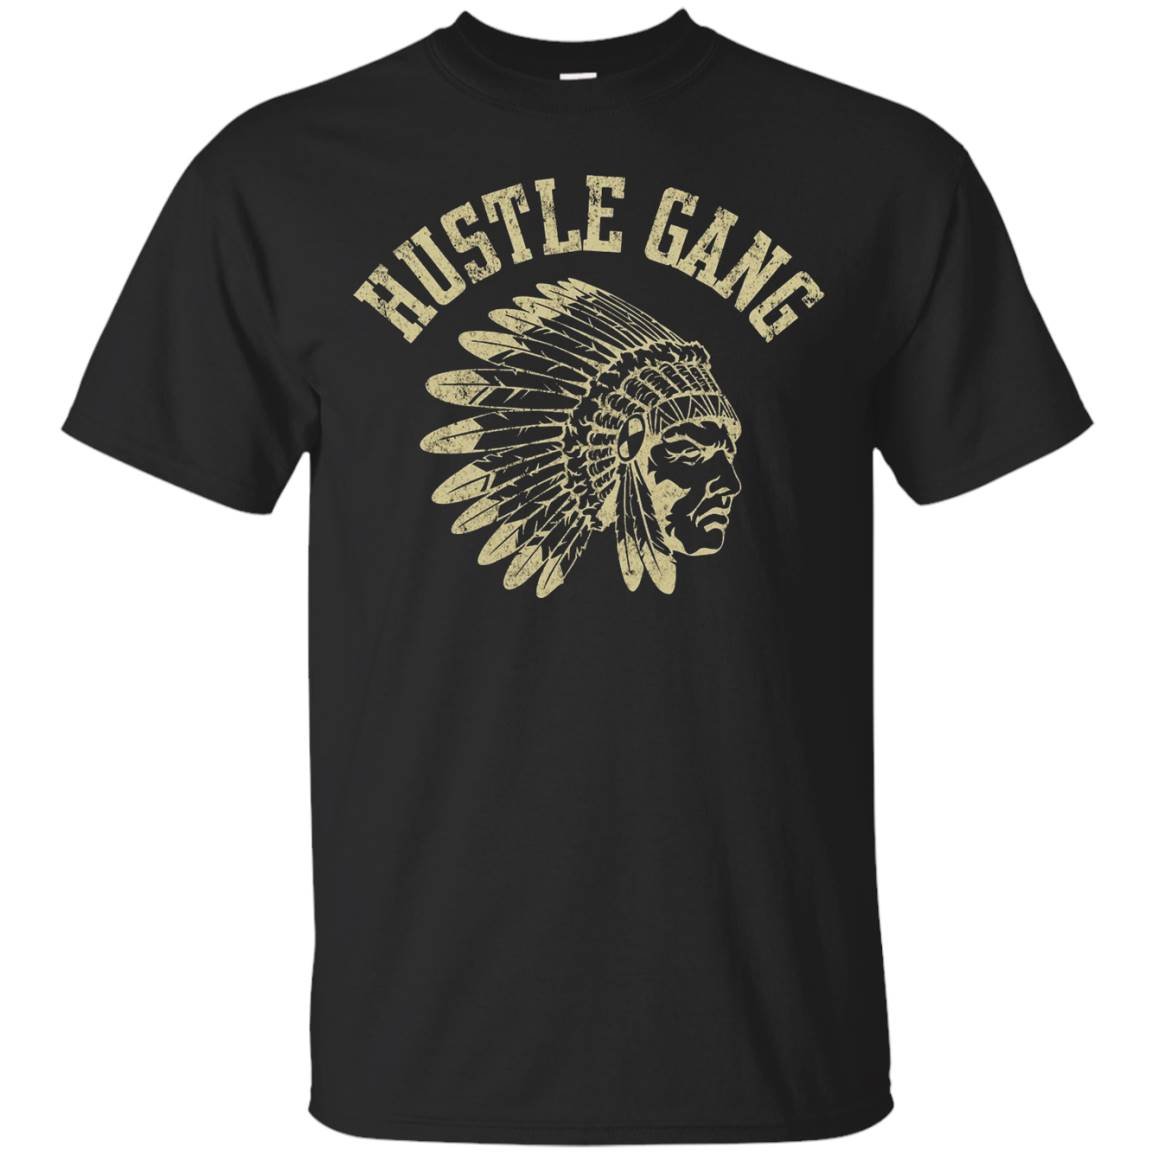 Hustle gang shirts